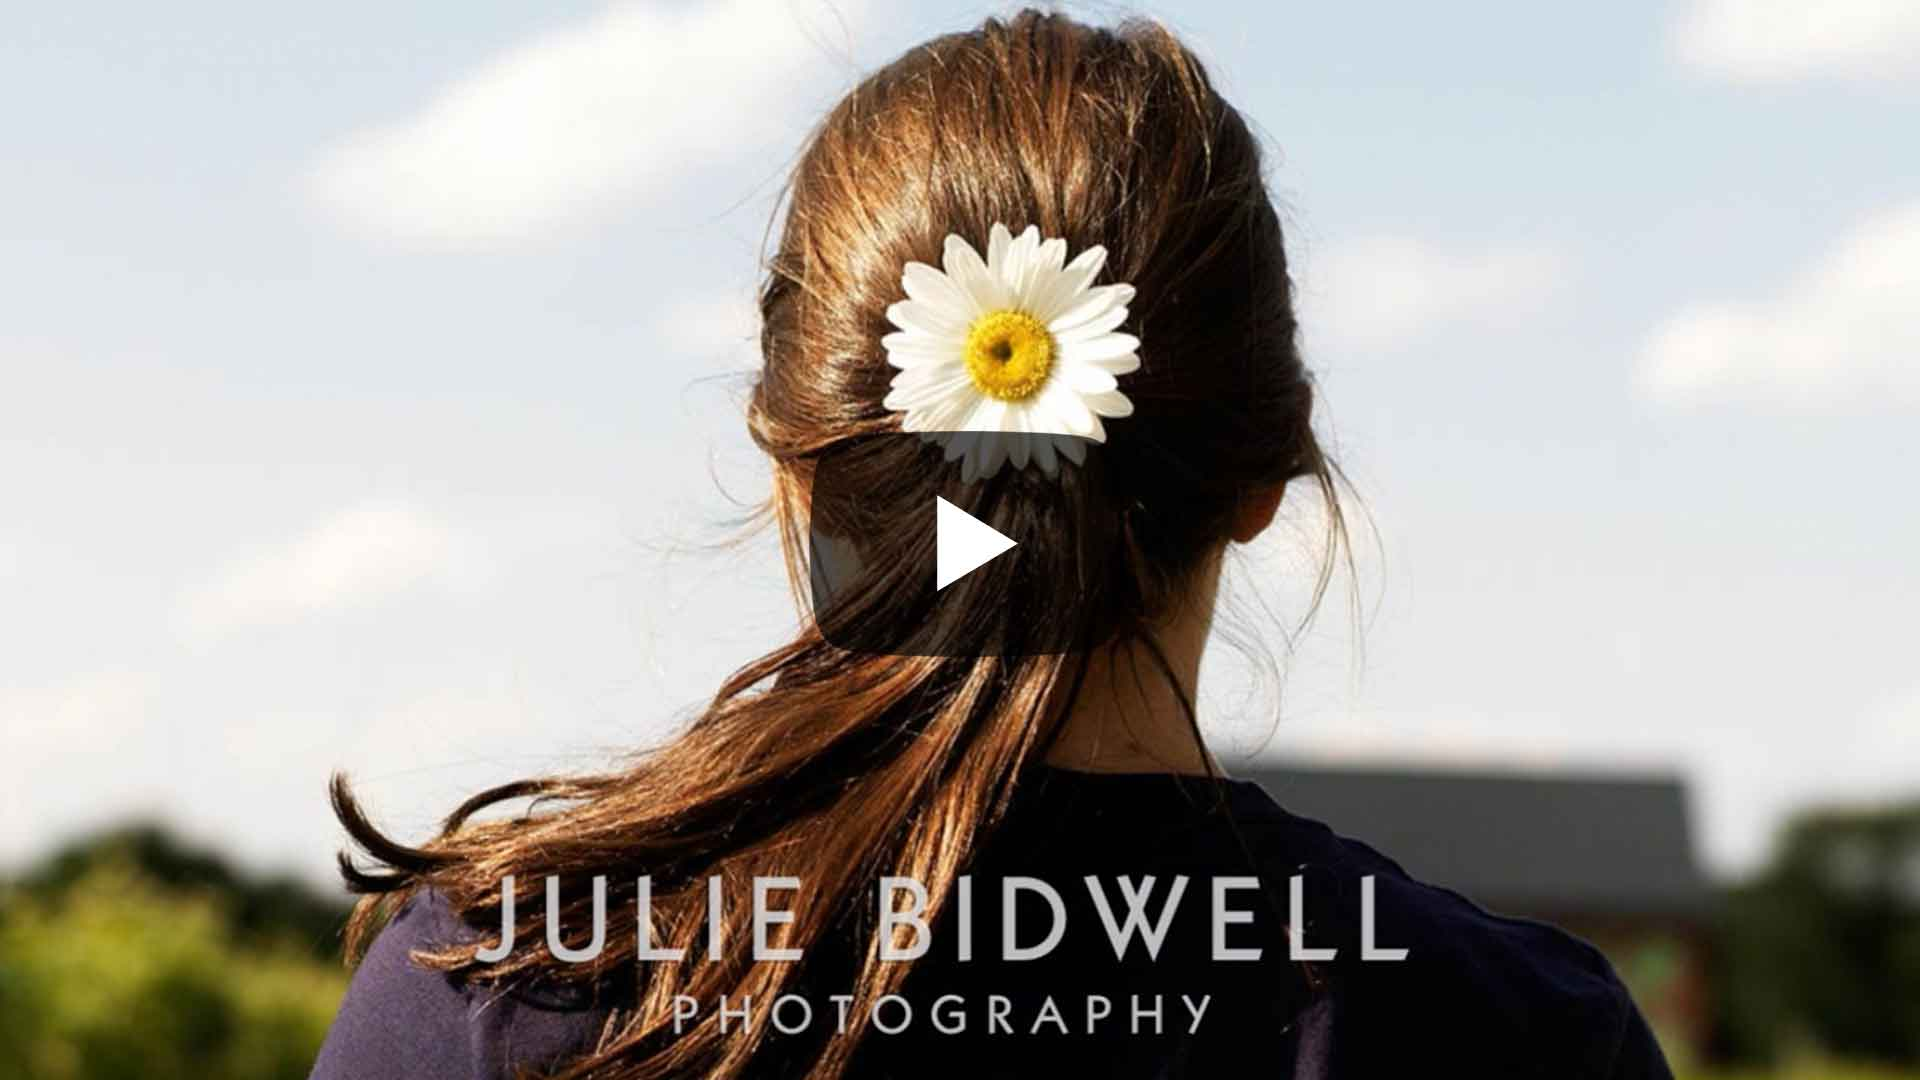 Julie Bidwell Photography sample video image